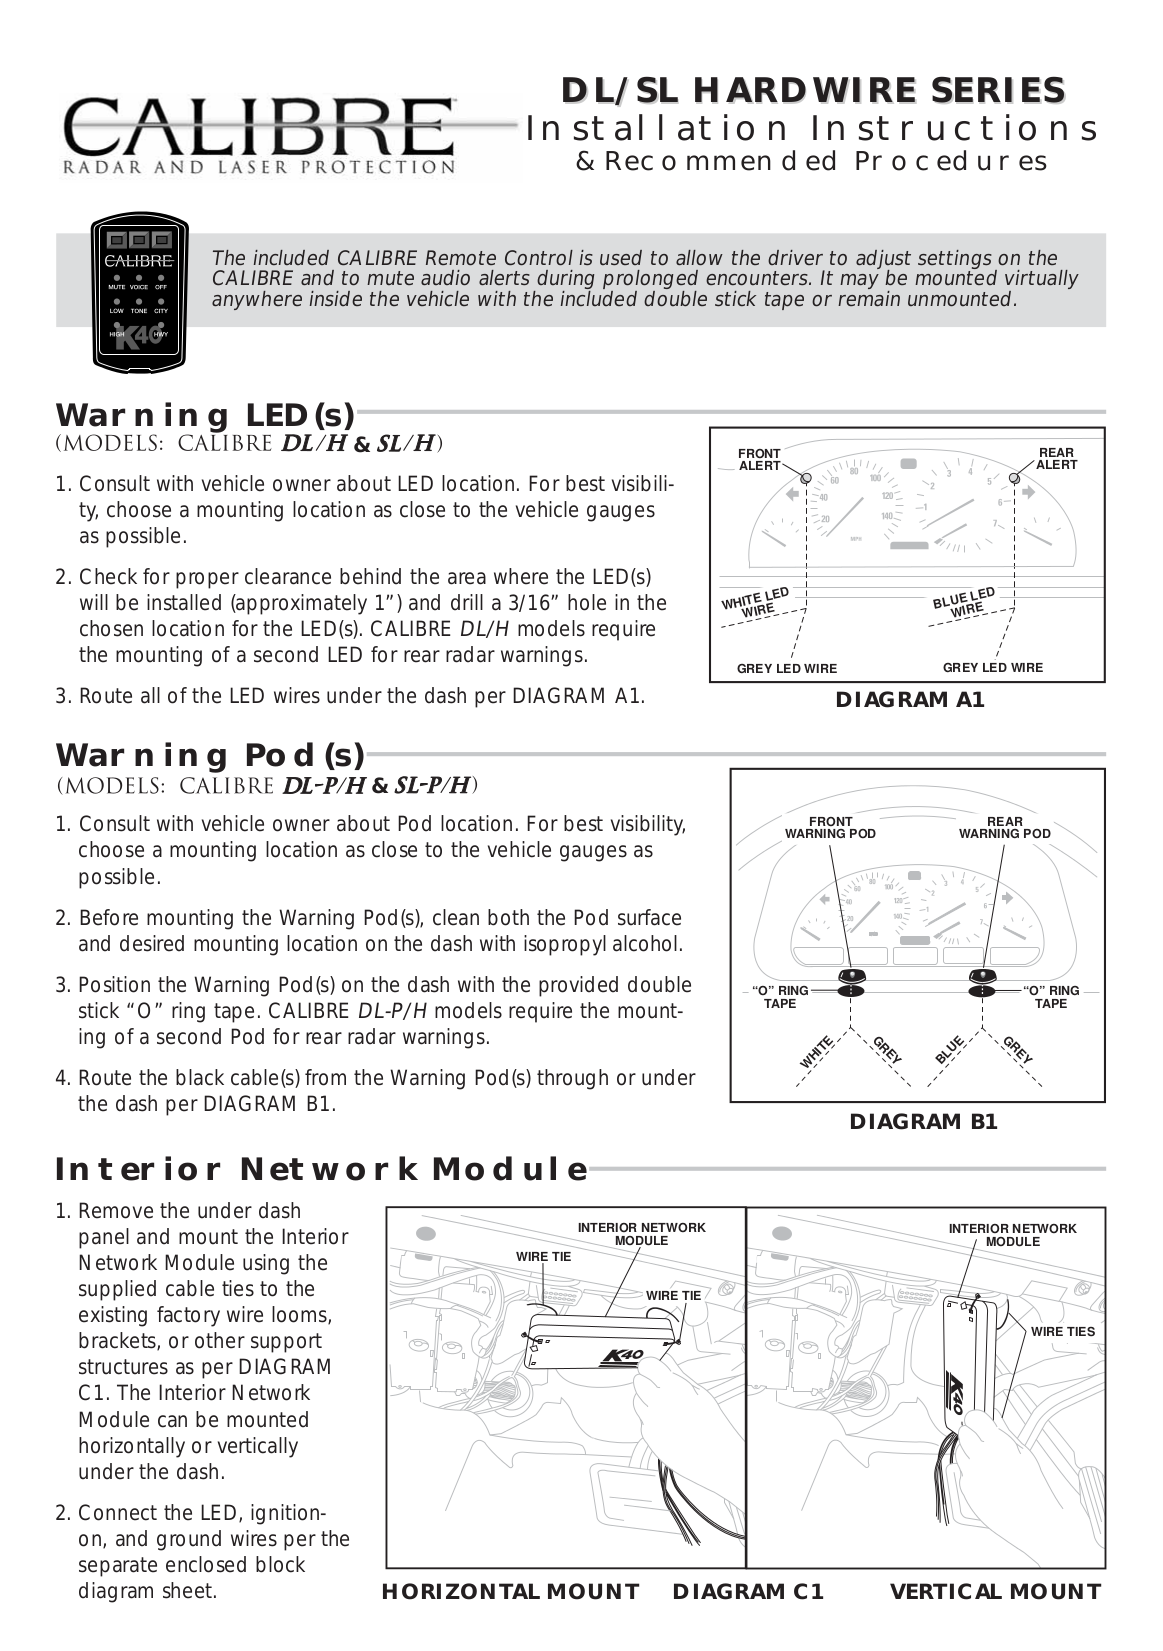 K40 Radar Detector Wiring Diagram And Schematics Free Picture Schematic Pdf For Calibre Sl Manual